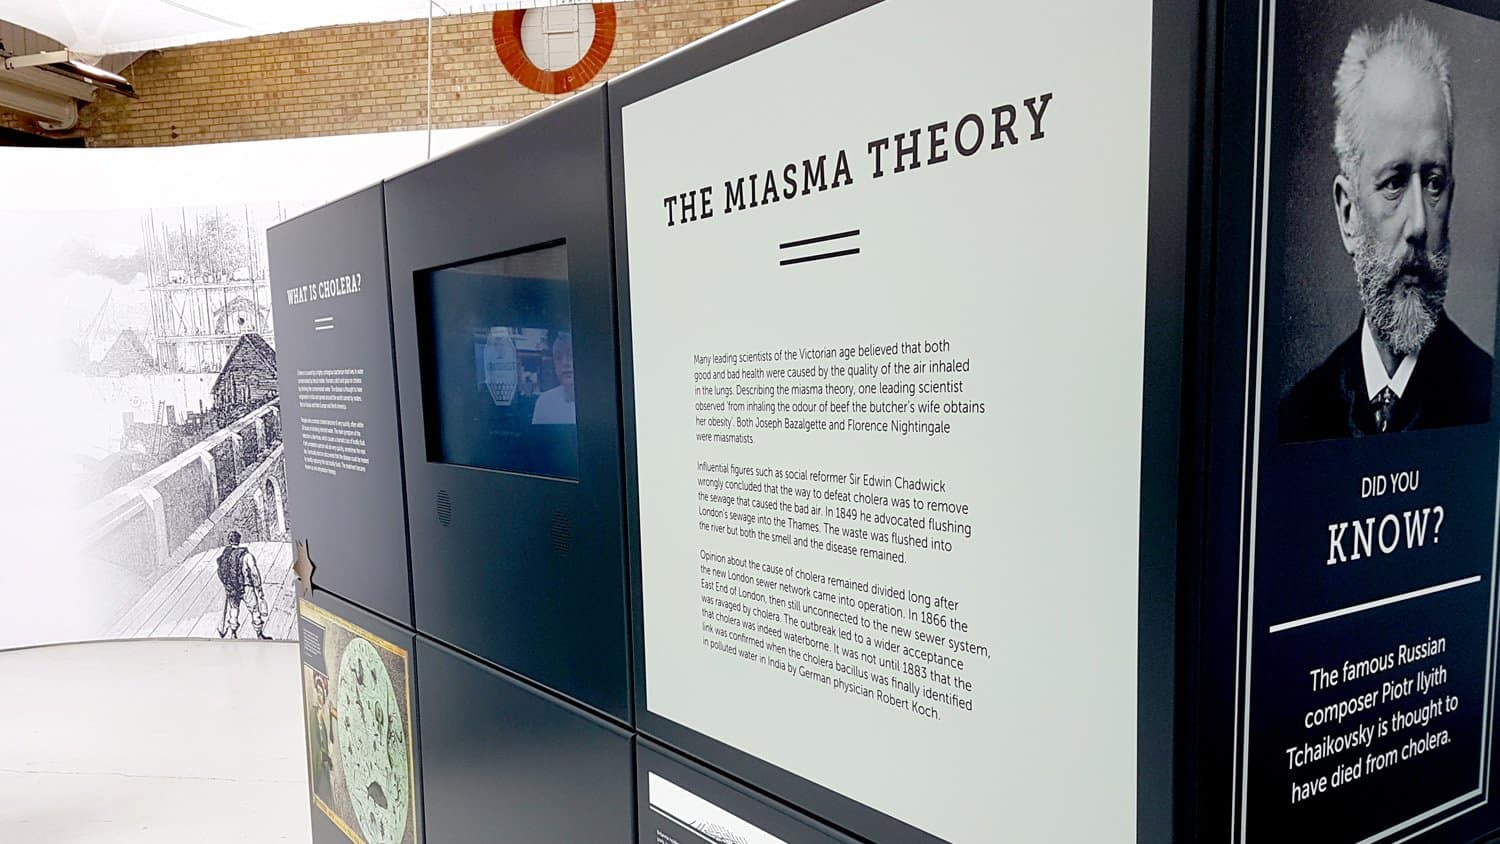 The Miasma Theory At Crossness Pumping Station